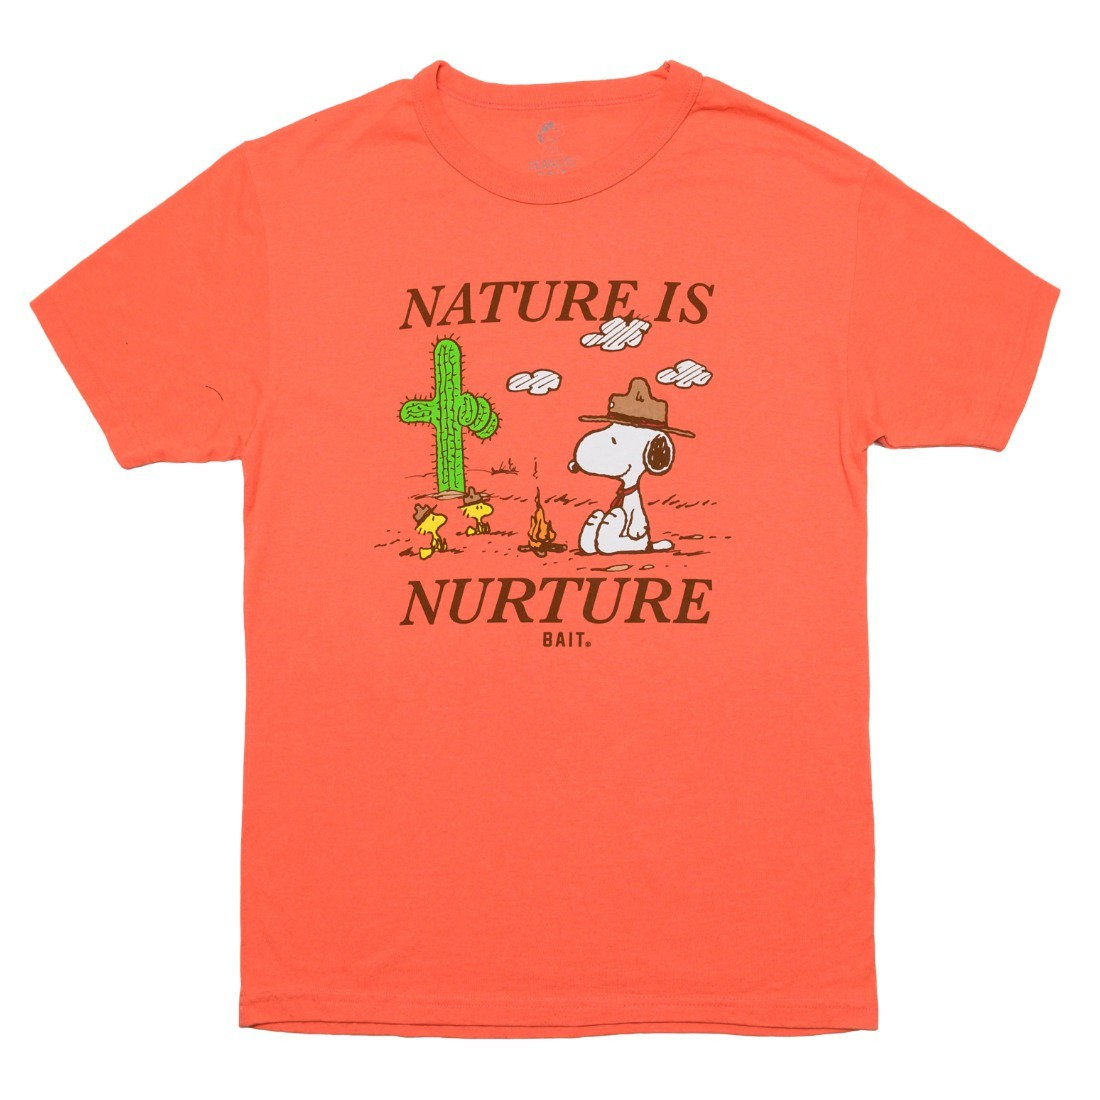 BAIT x Snoopy x Upcycle Men Nature Is Nurture Tee (pink / coral)